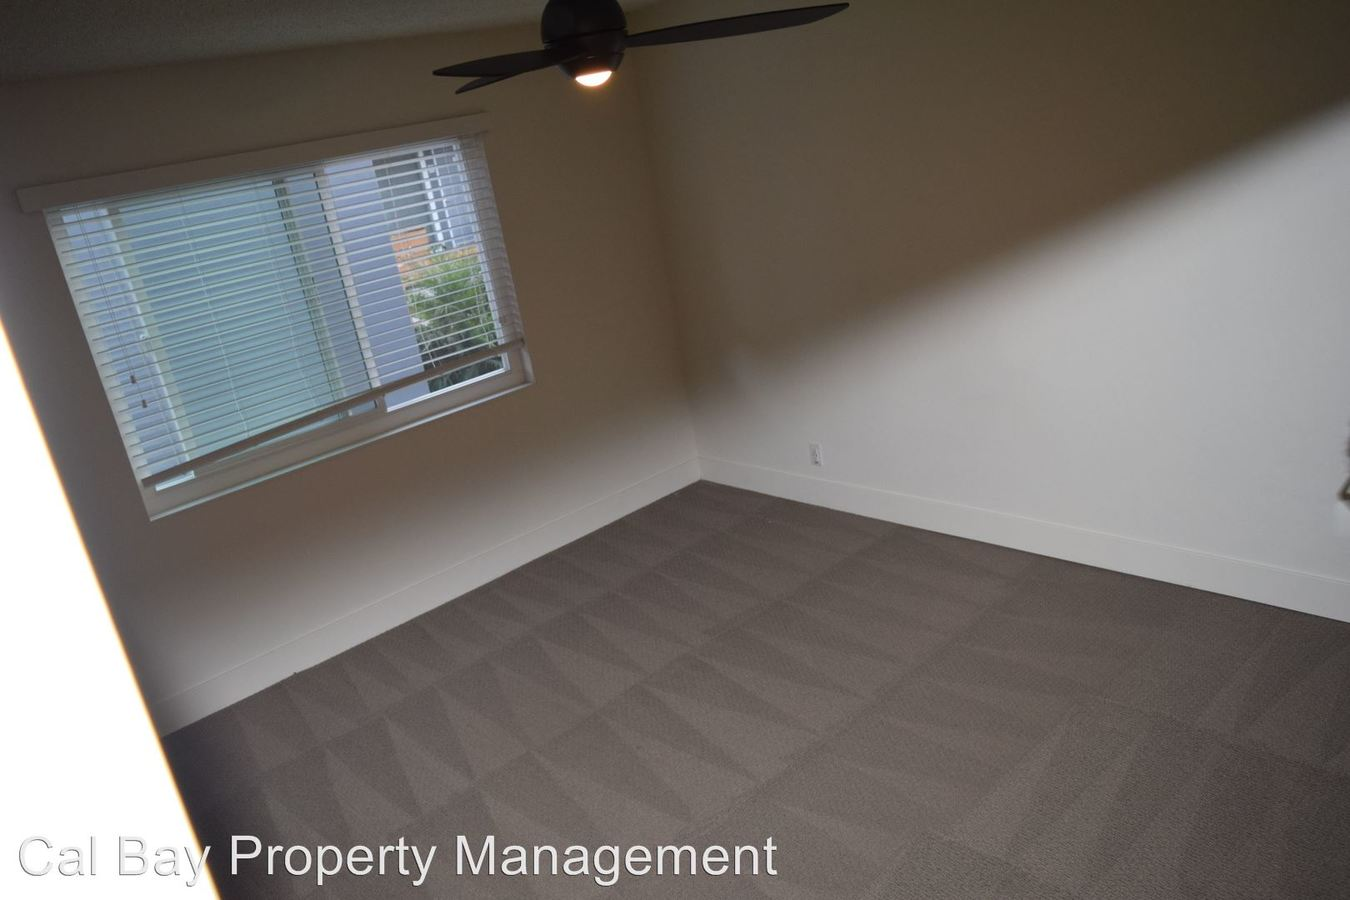 1 Bedroom 1 Bathroom Apartment for rent at 1090 Sunnyvale Saratoga Road in Sunnyvale, CA